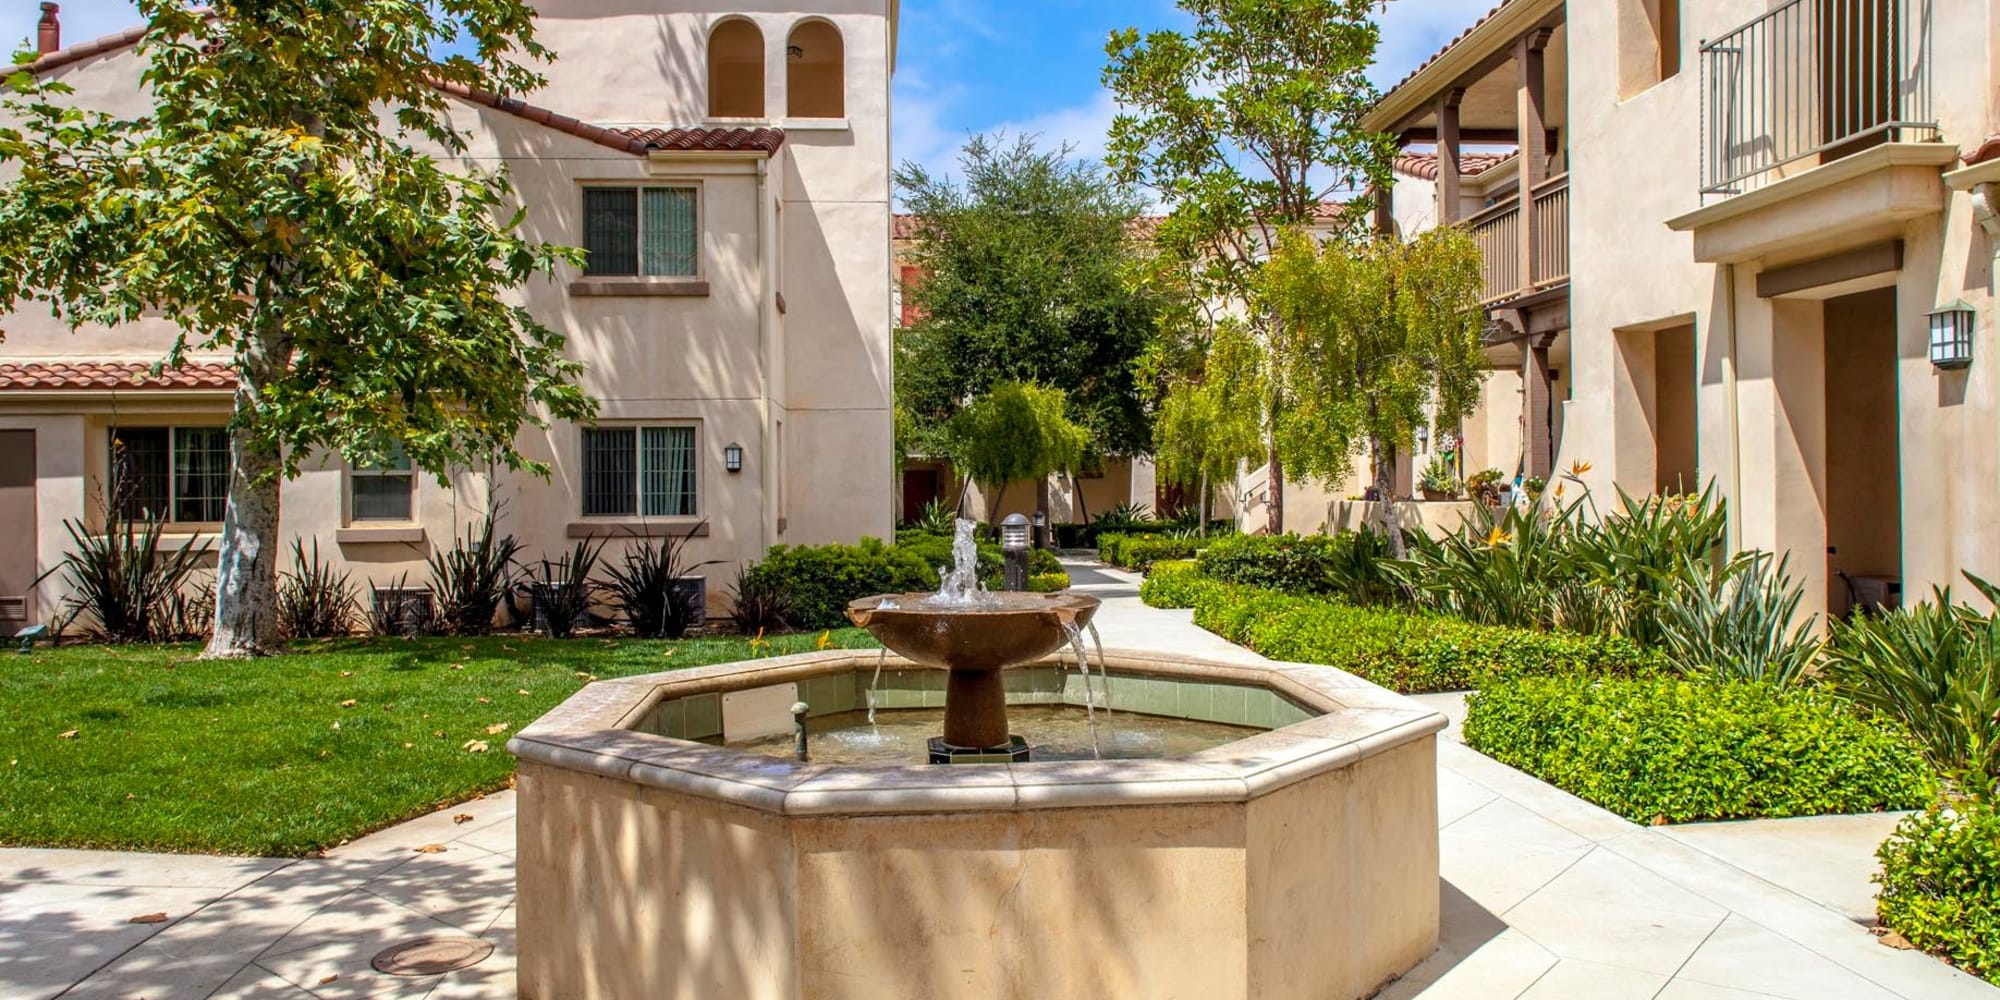 Fountain surrounded by well-maintained walkways and landscaping at Mission Hills in Camarillo, California